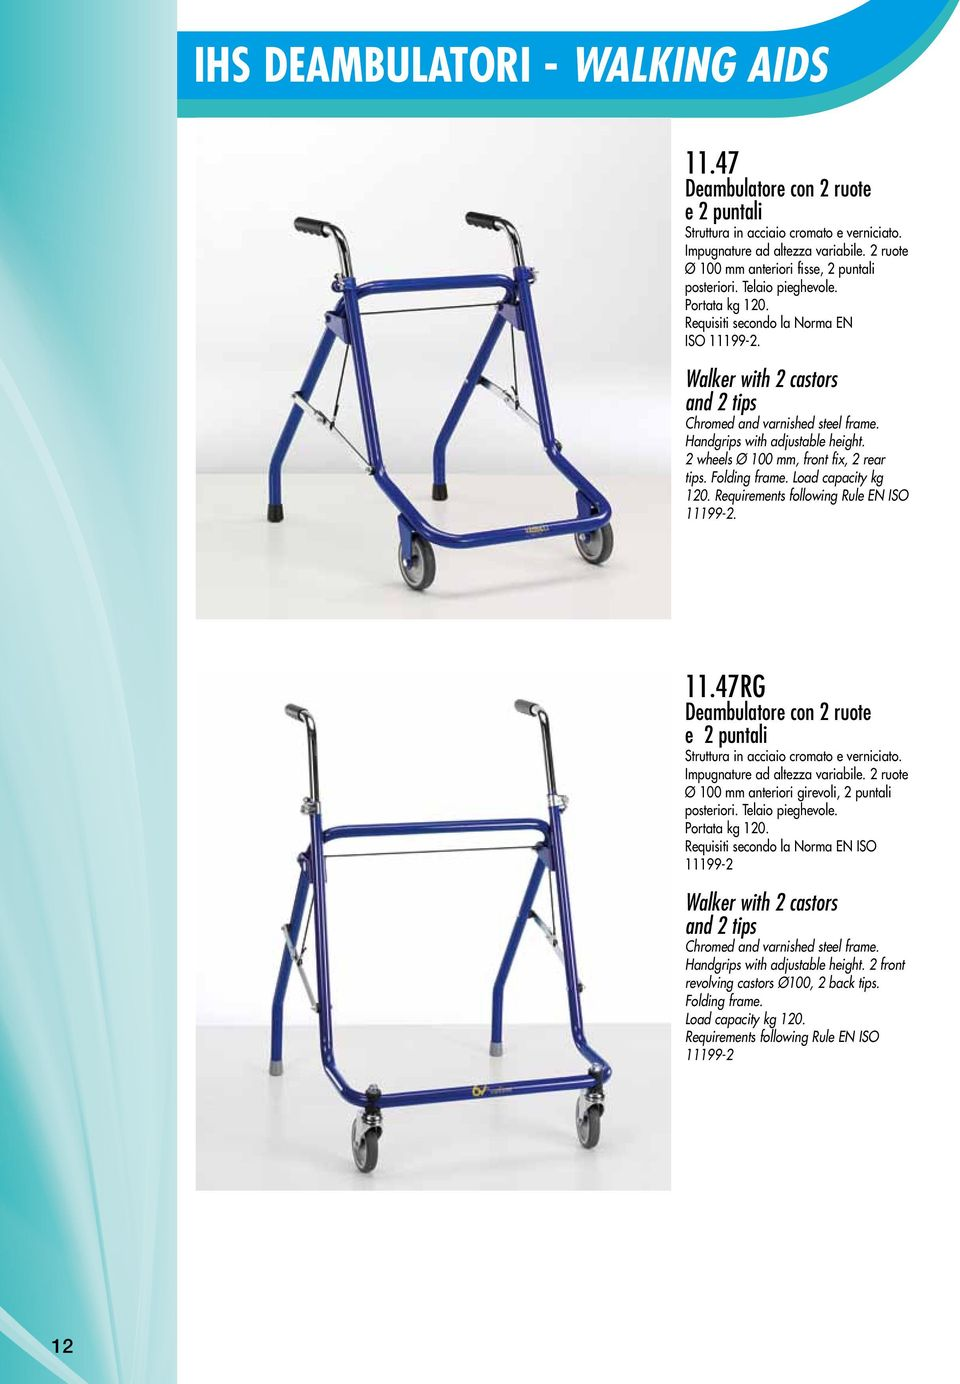 2 wheels Ø 100 mm, front fix, 2 rear tips. Folding frame. Load capacity kg 120. Requirements following Rule EN ISO 111